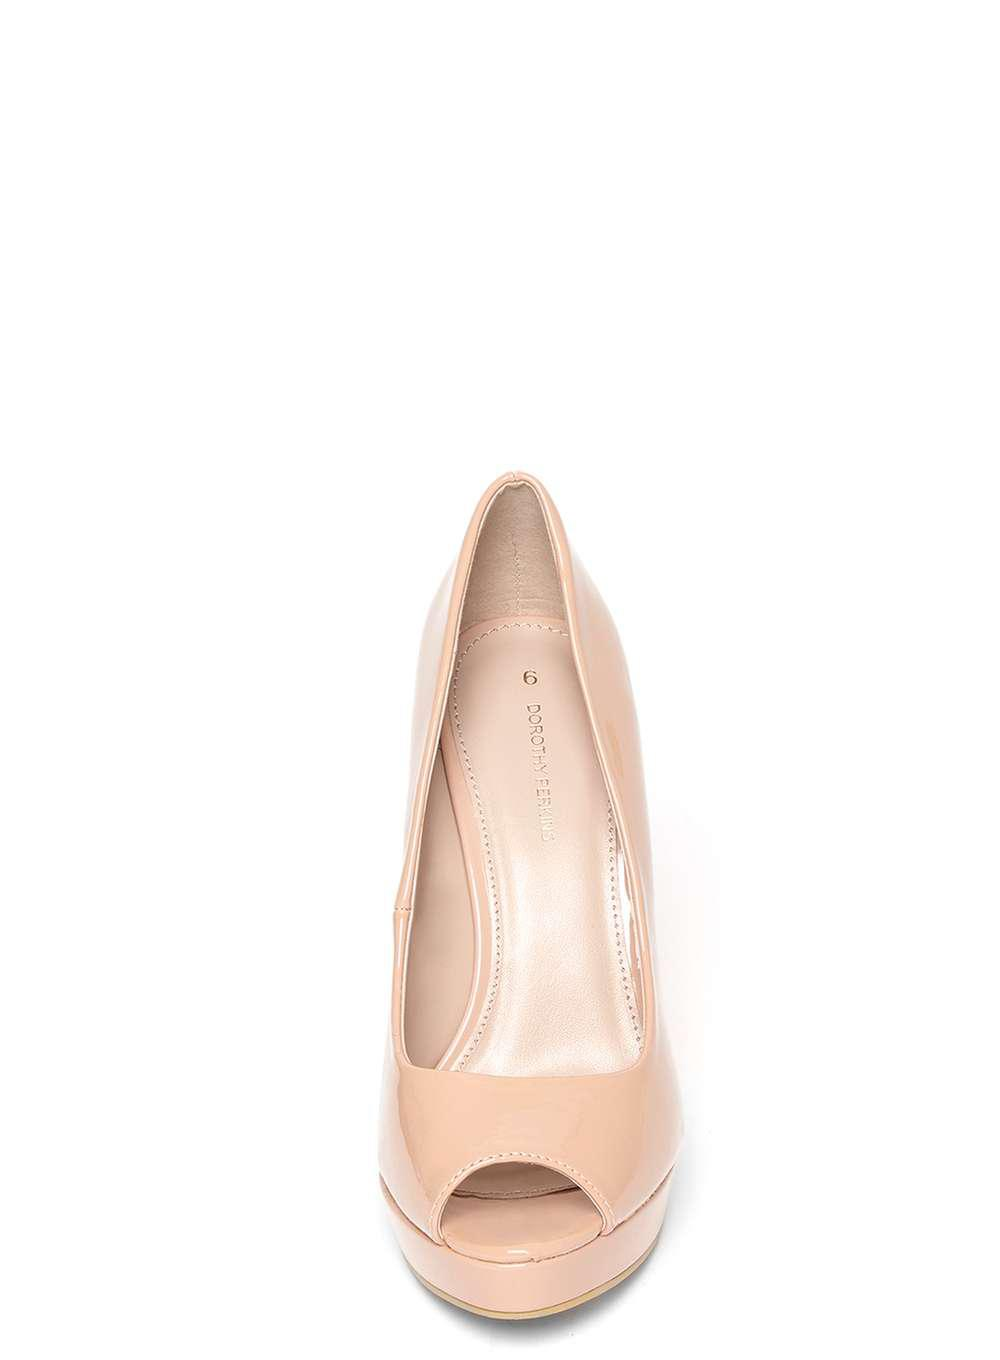 905603b4 Dorothy Perkins Nude 'gift' Peep Toe Court Shoes in Natural - Lyst